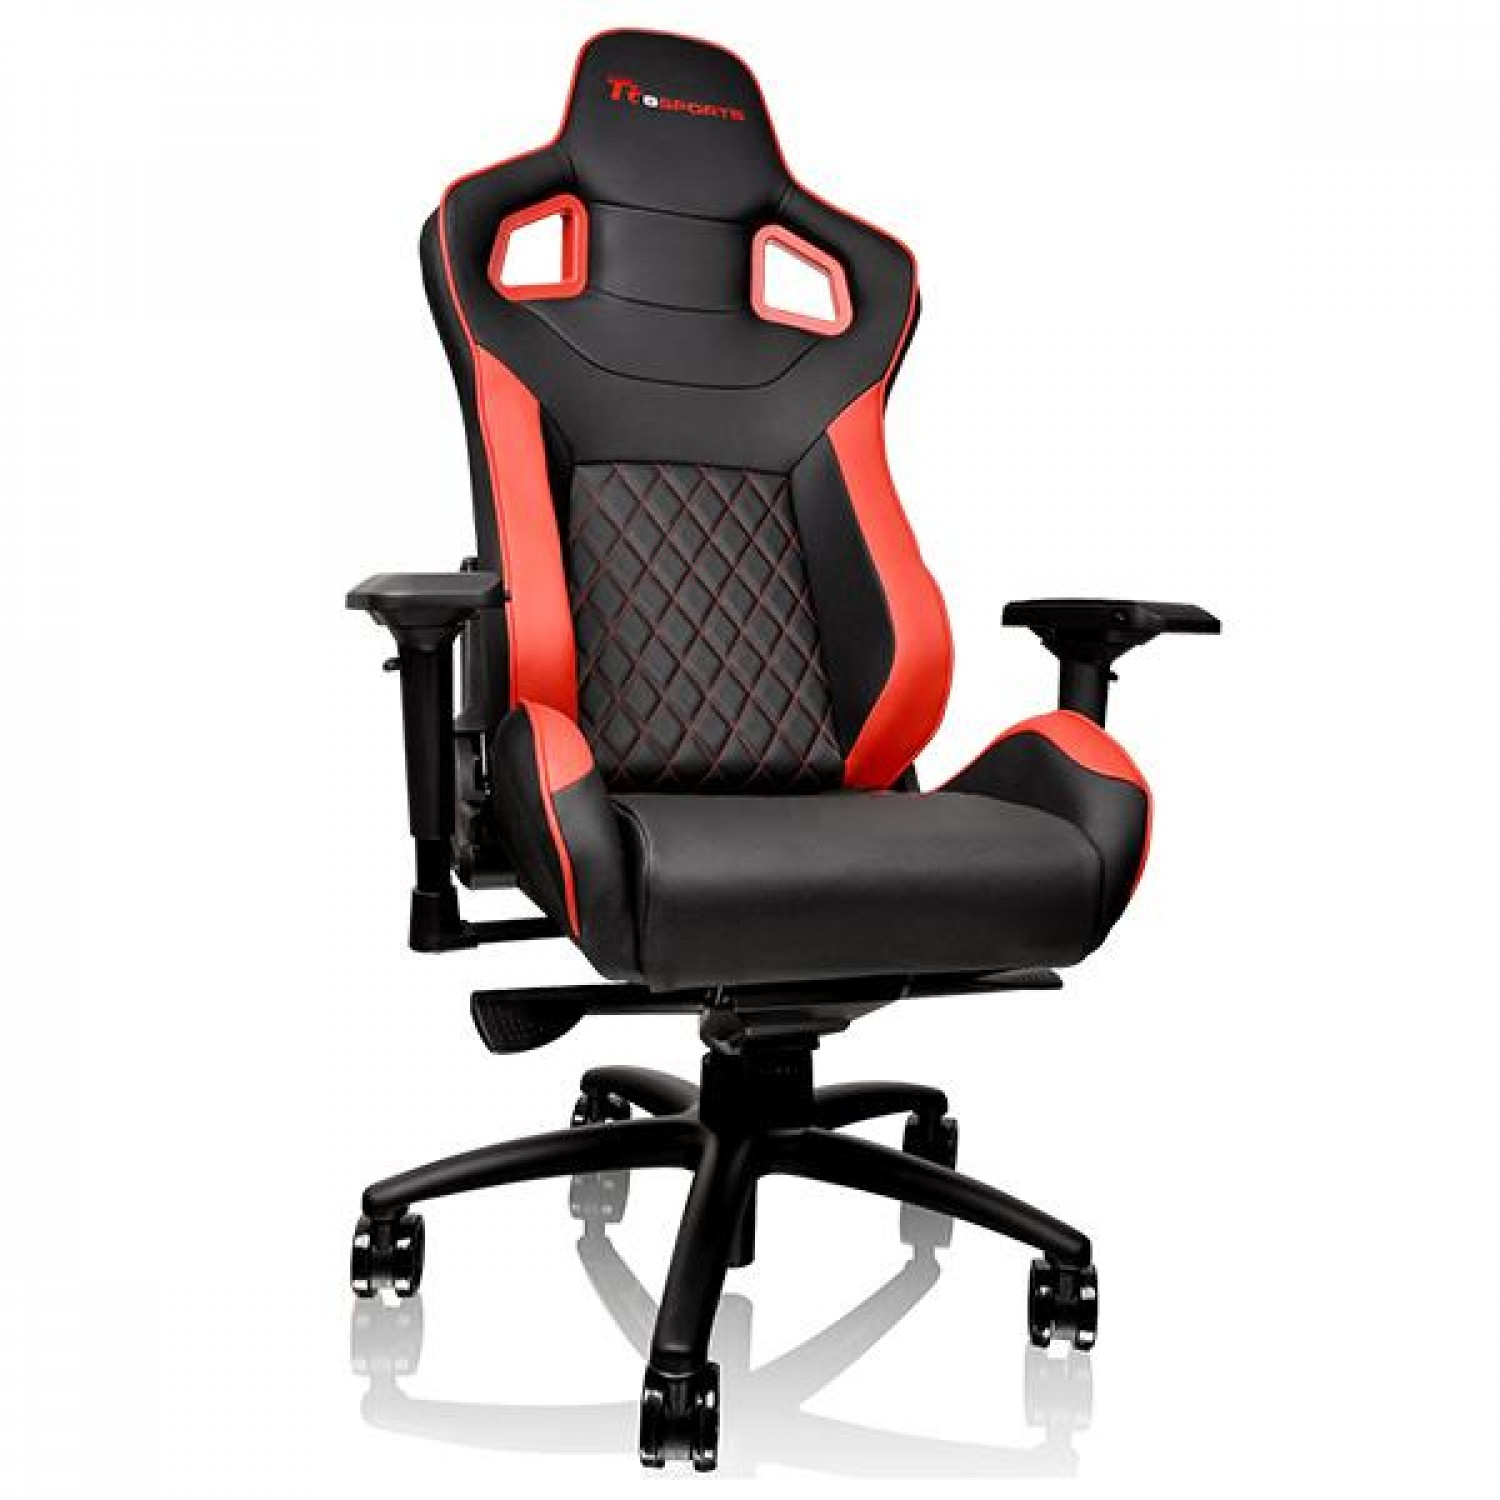 SILLA GAMER TT ESPORTS GTF 100 BLACK/RED